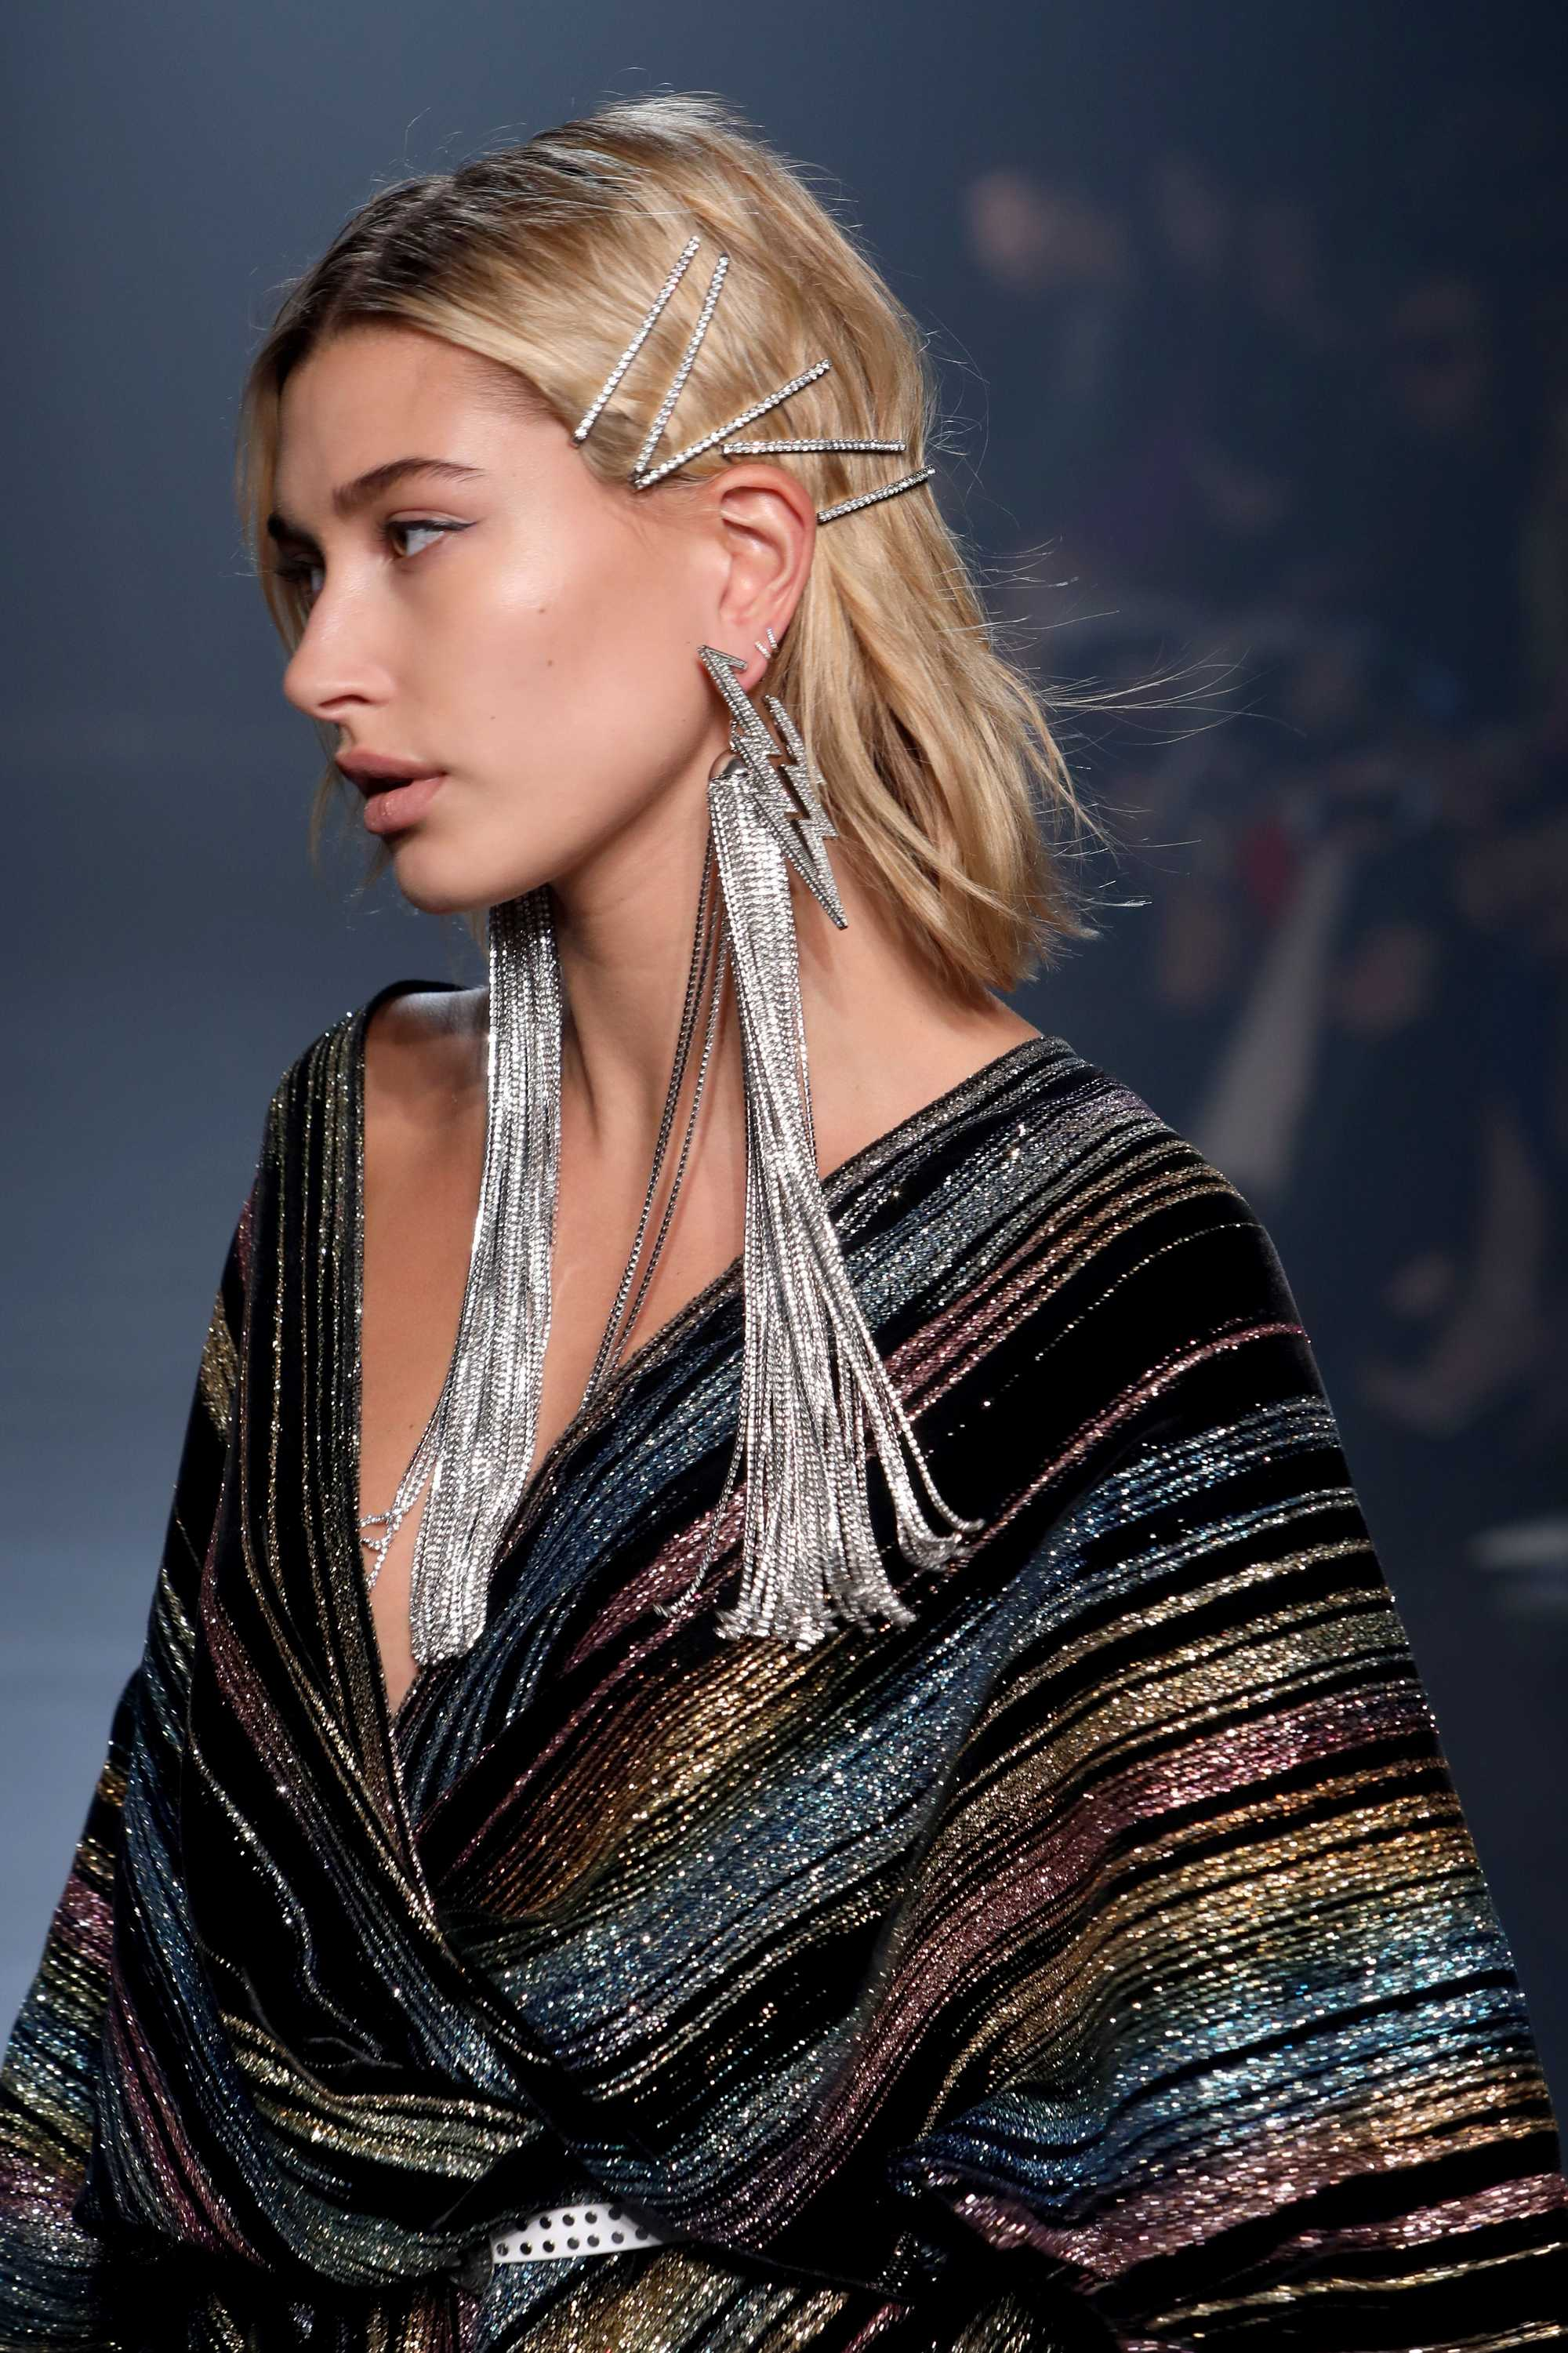 hailey baldwin blonde shoulder length hair with jewelled hair slides on catwalk